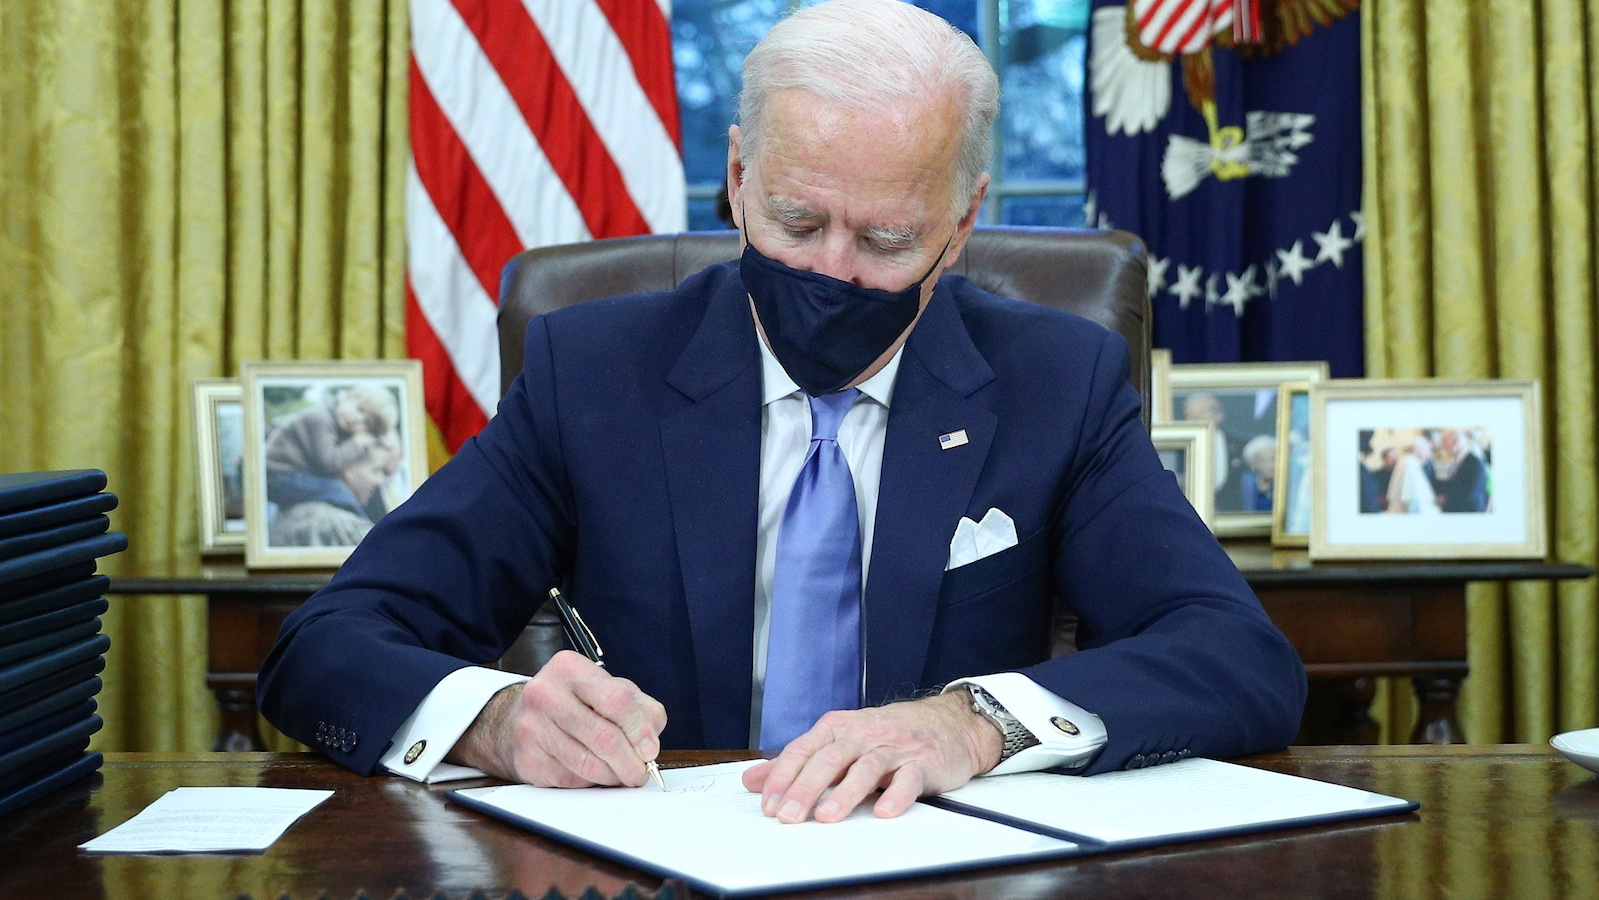 Biden signs executive orders on his first day in the White House